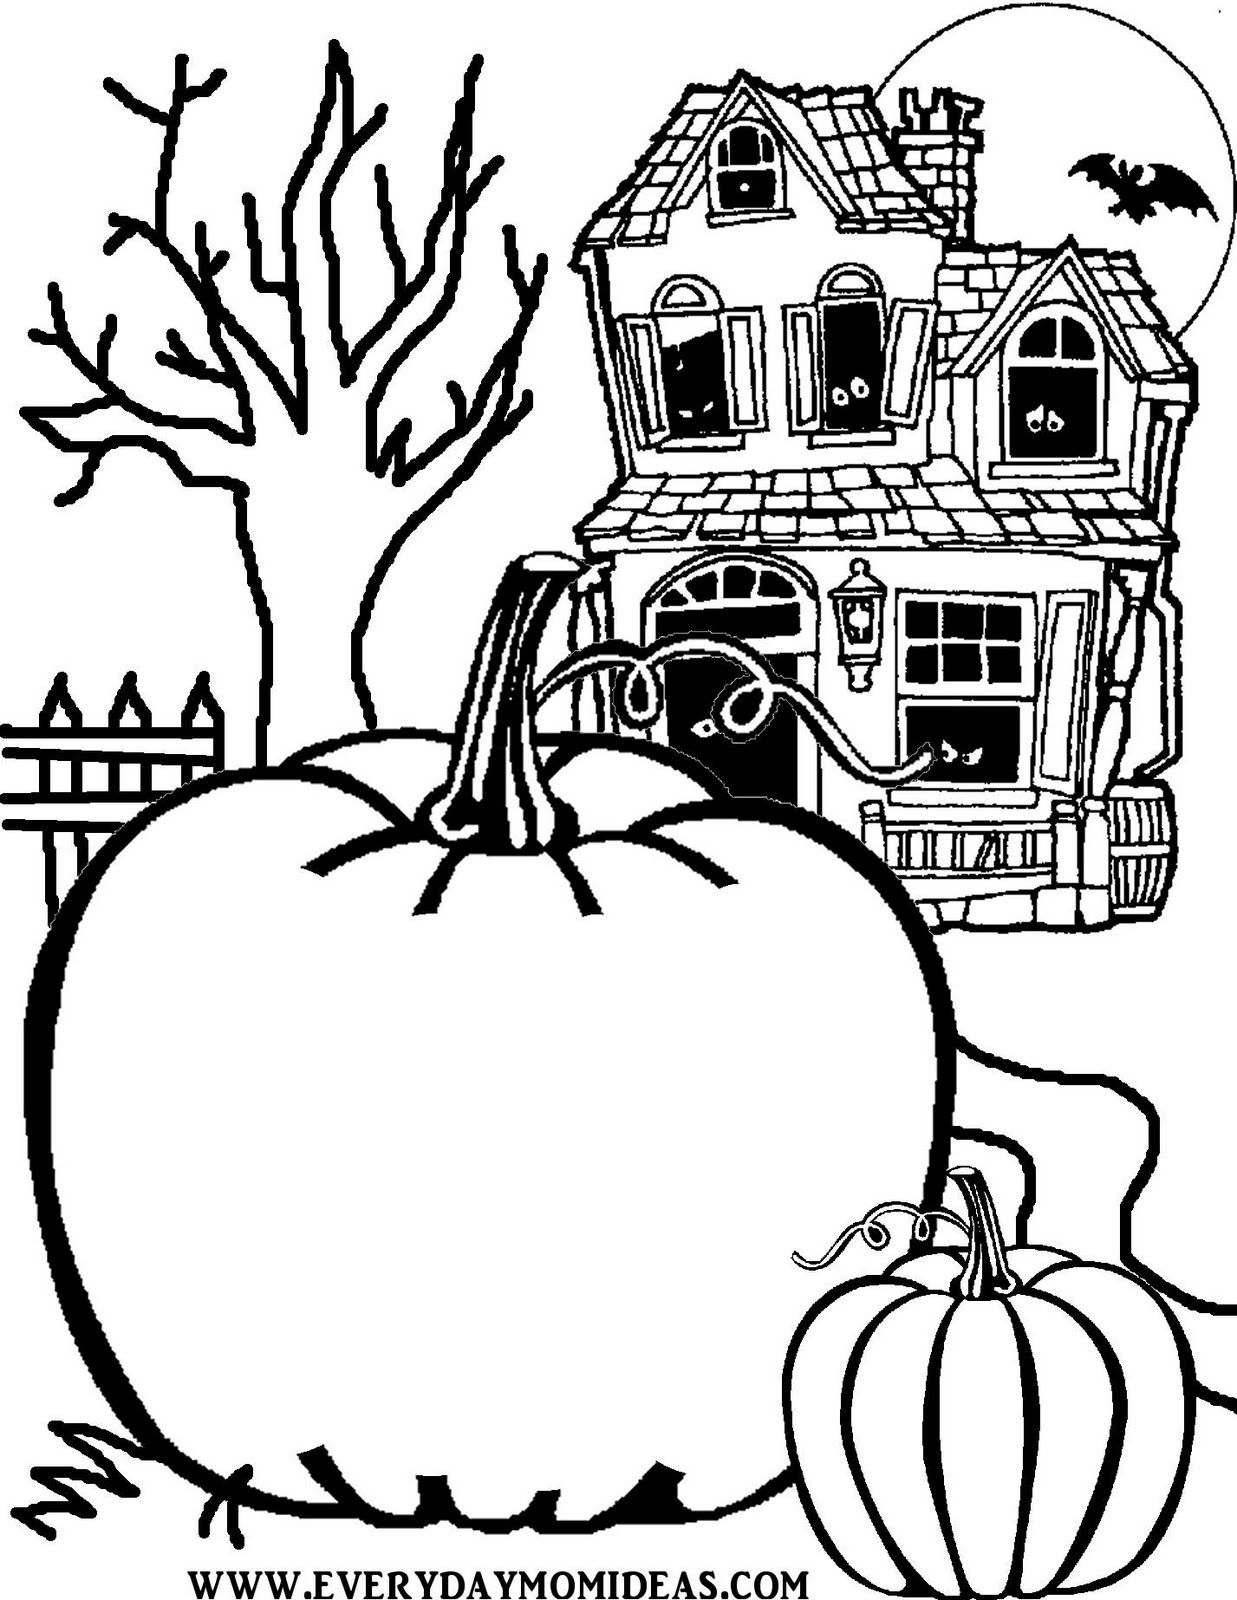 Create Your Own JackOLantern (Halloween Coloring